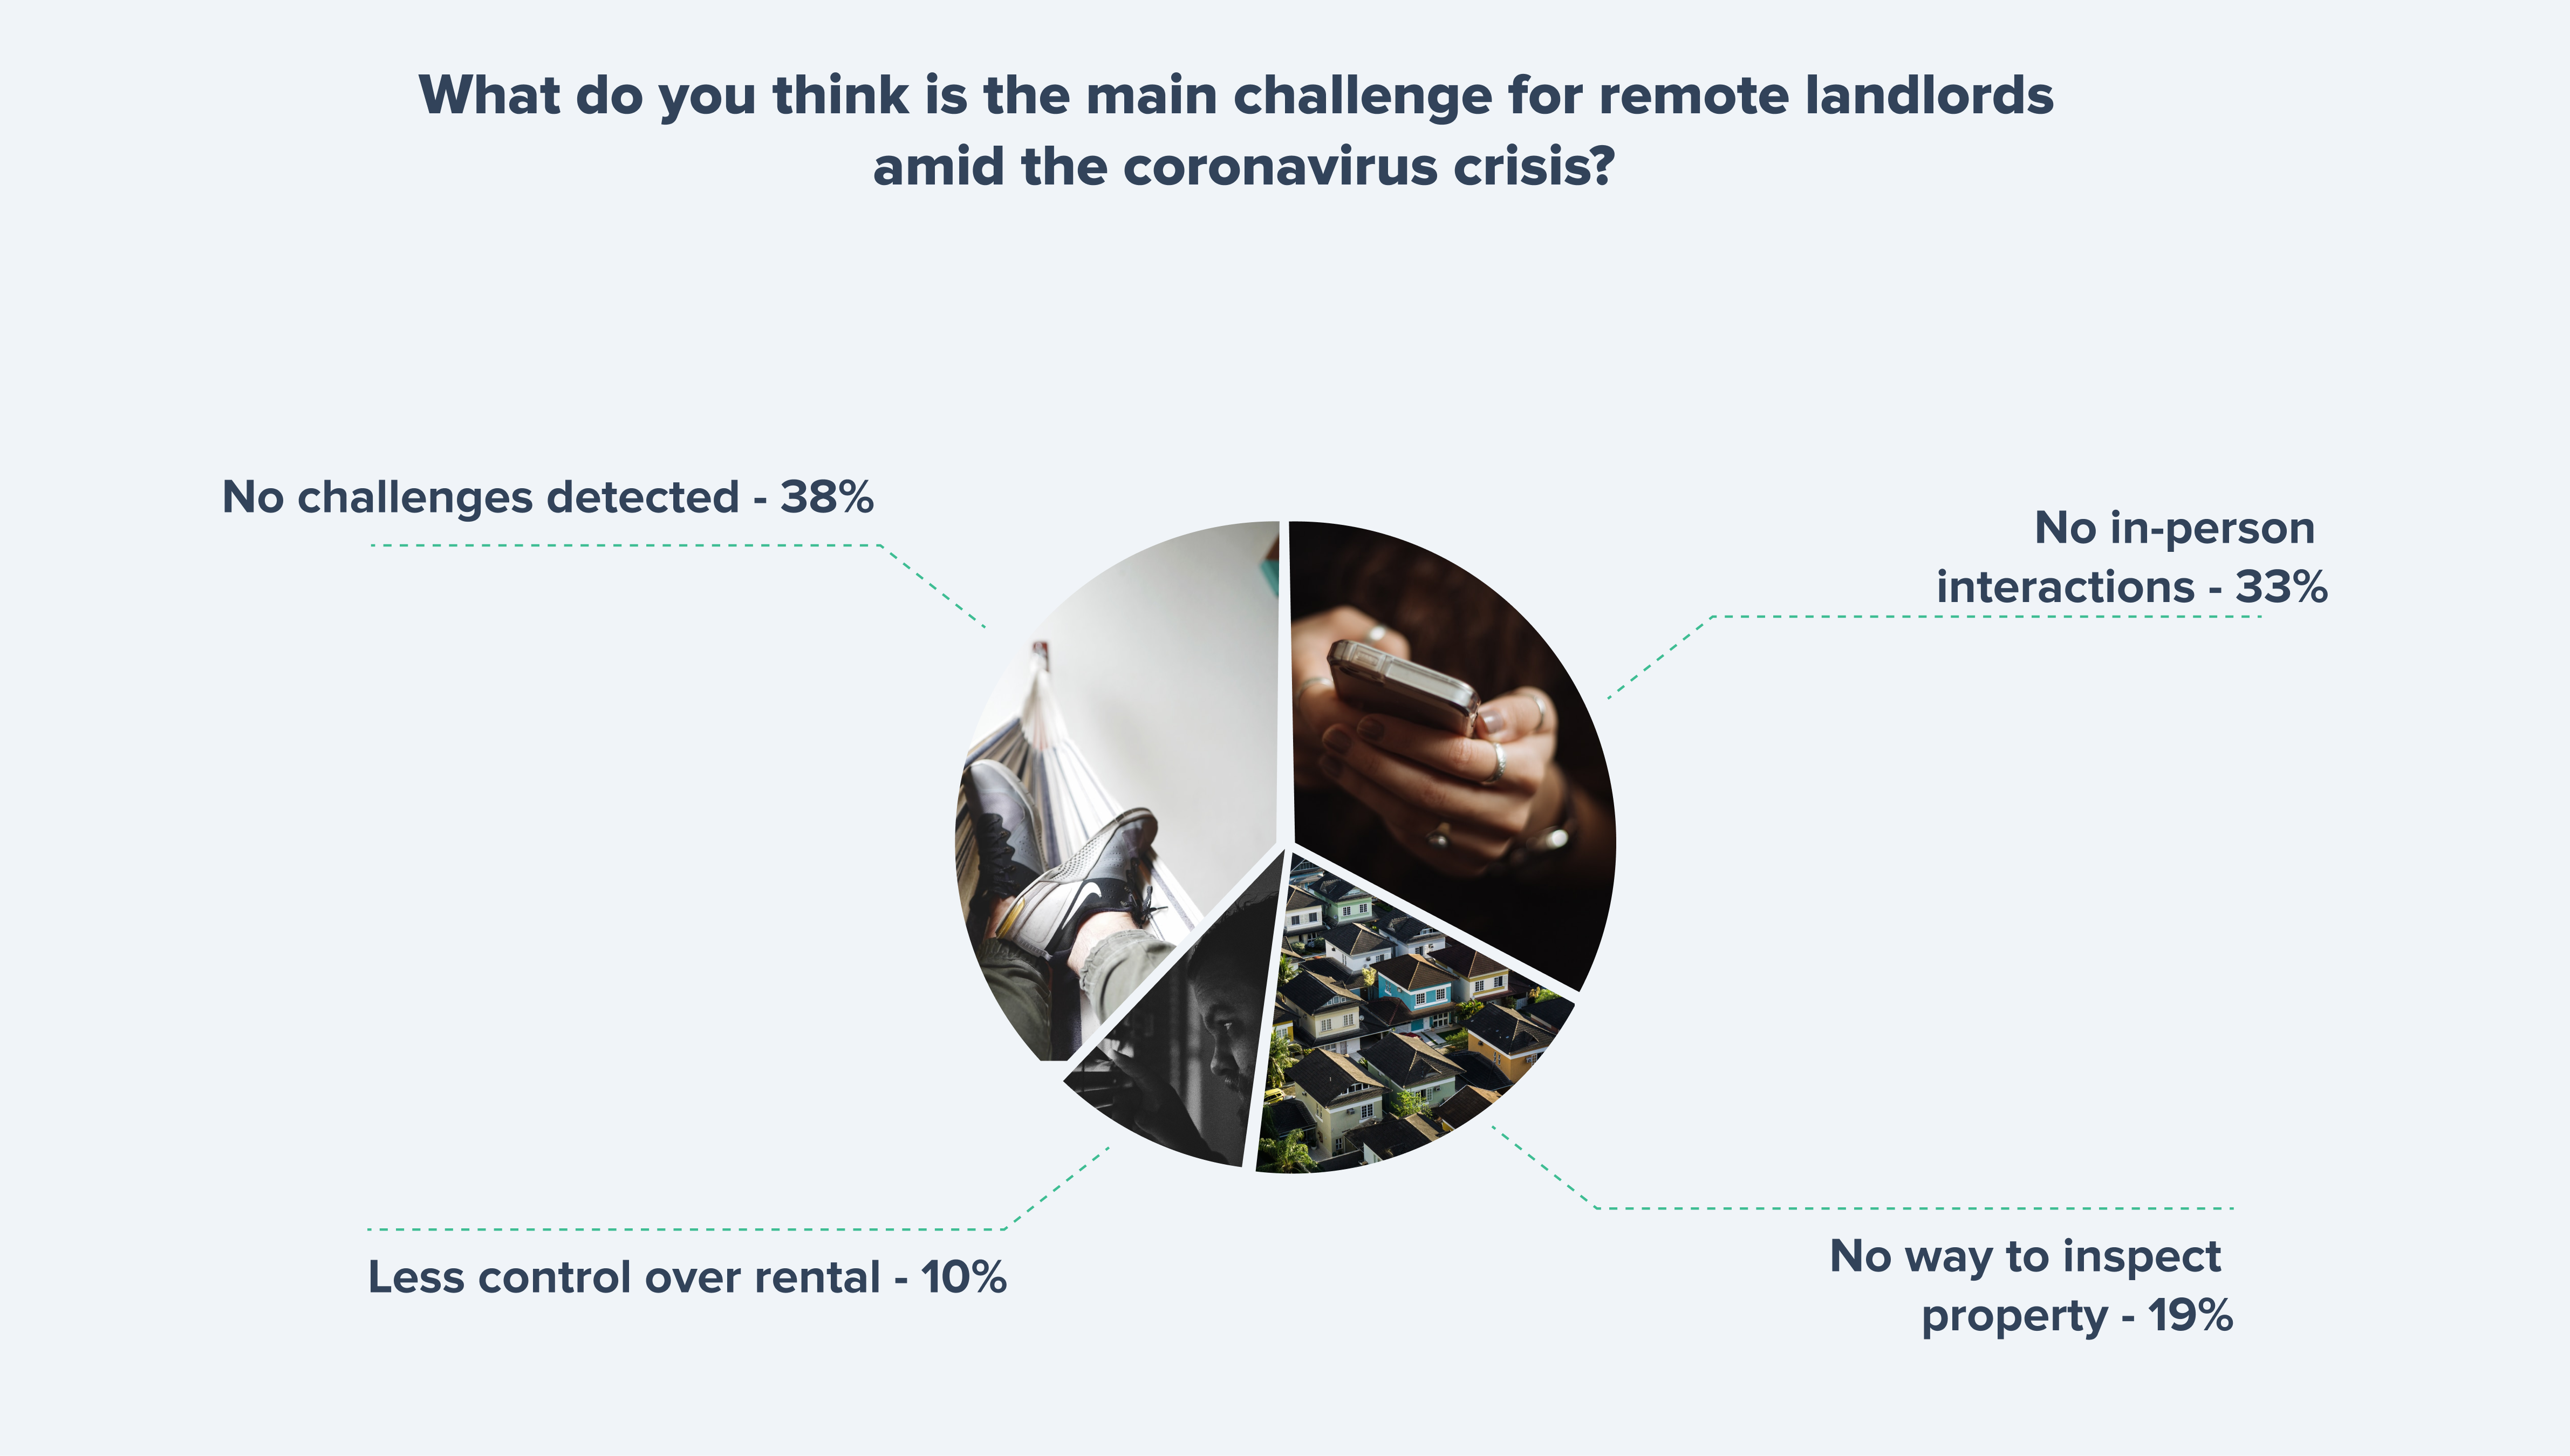 What is the main challenge for remote landlords